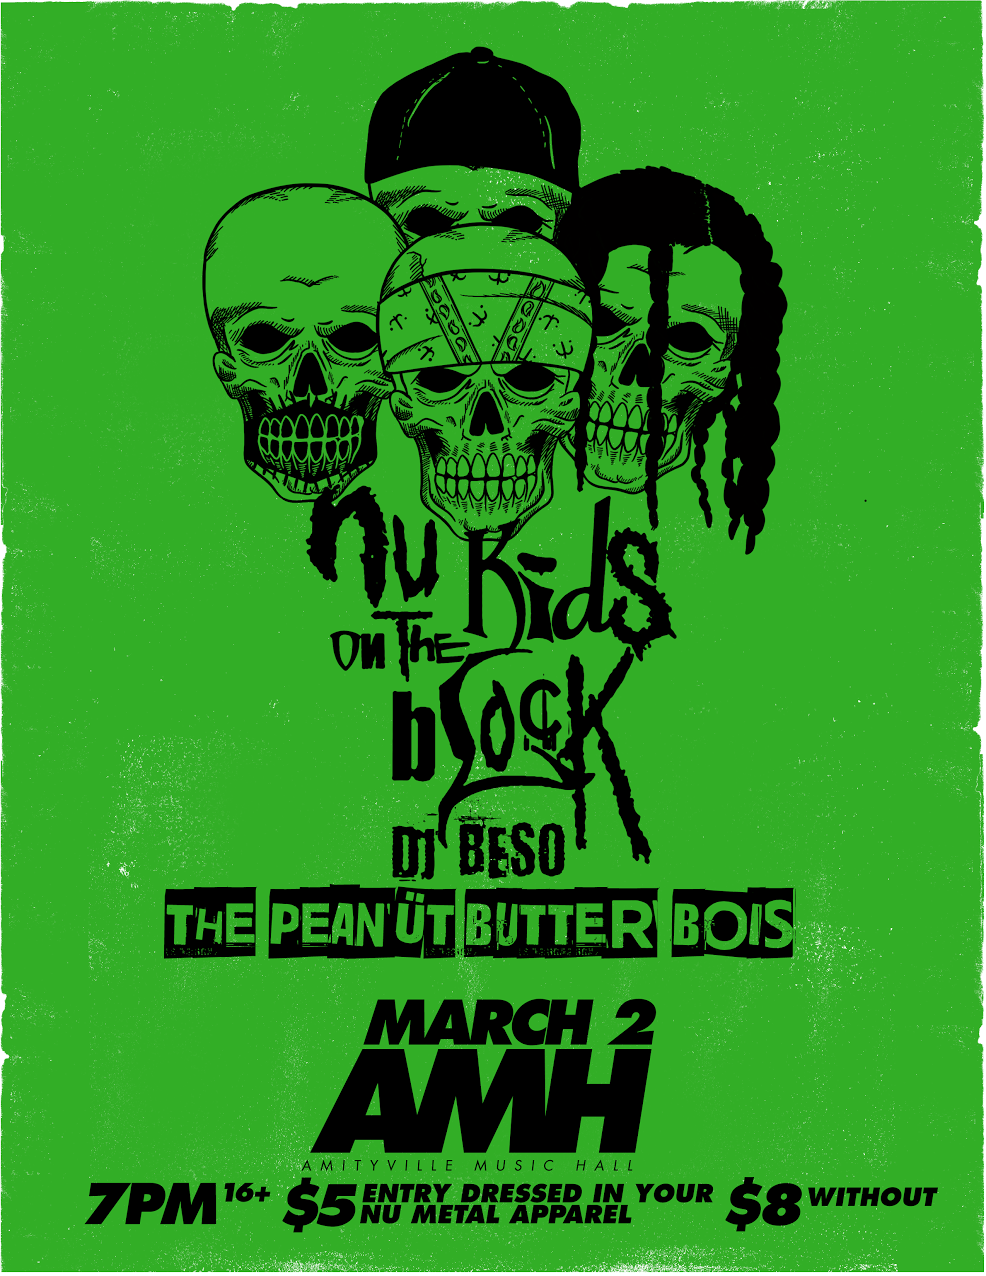 Nu Kids On The Block - DJ Beso, The Peanut Butter Bois$5 Dressed in Nu Metal Apparel / $8 Without16+ w/ ID